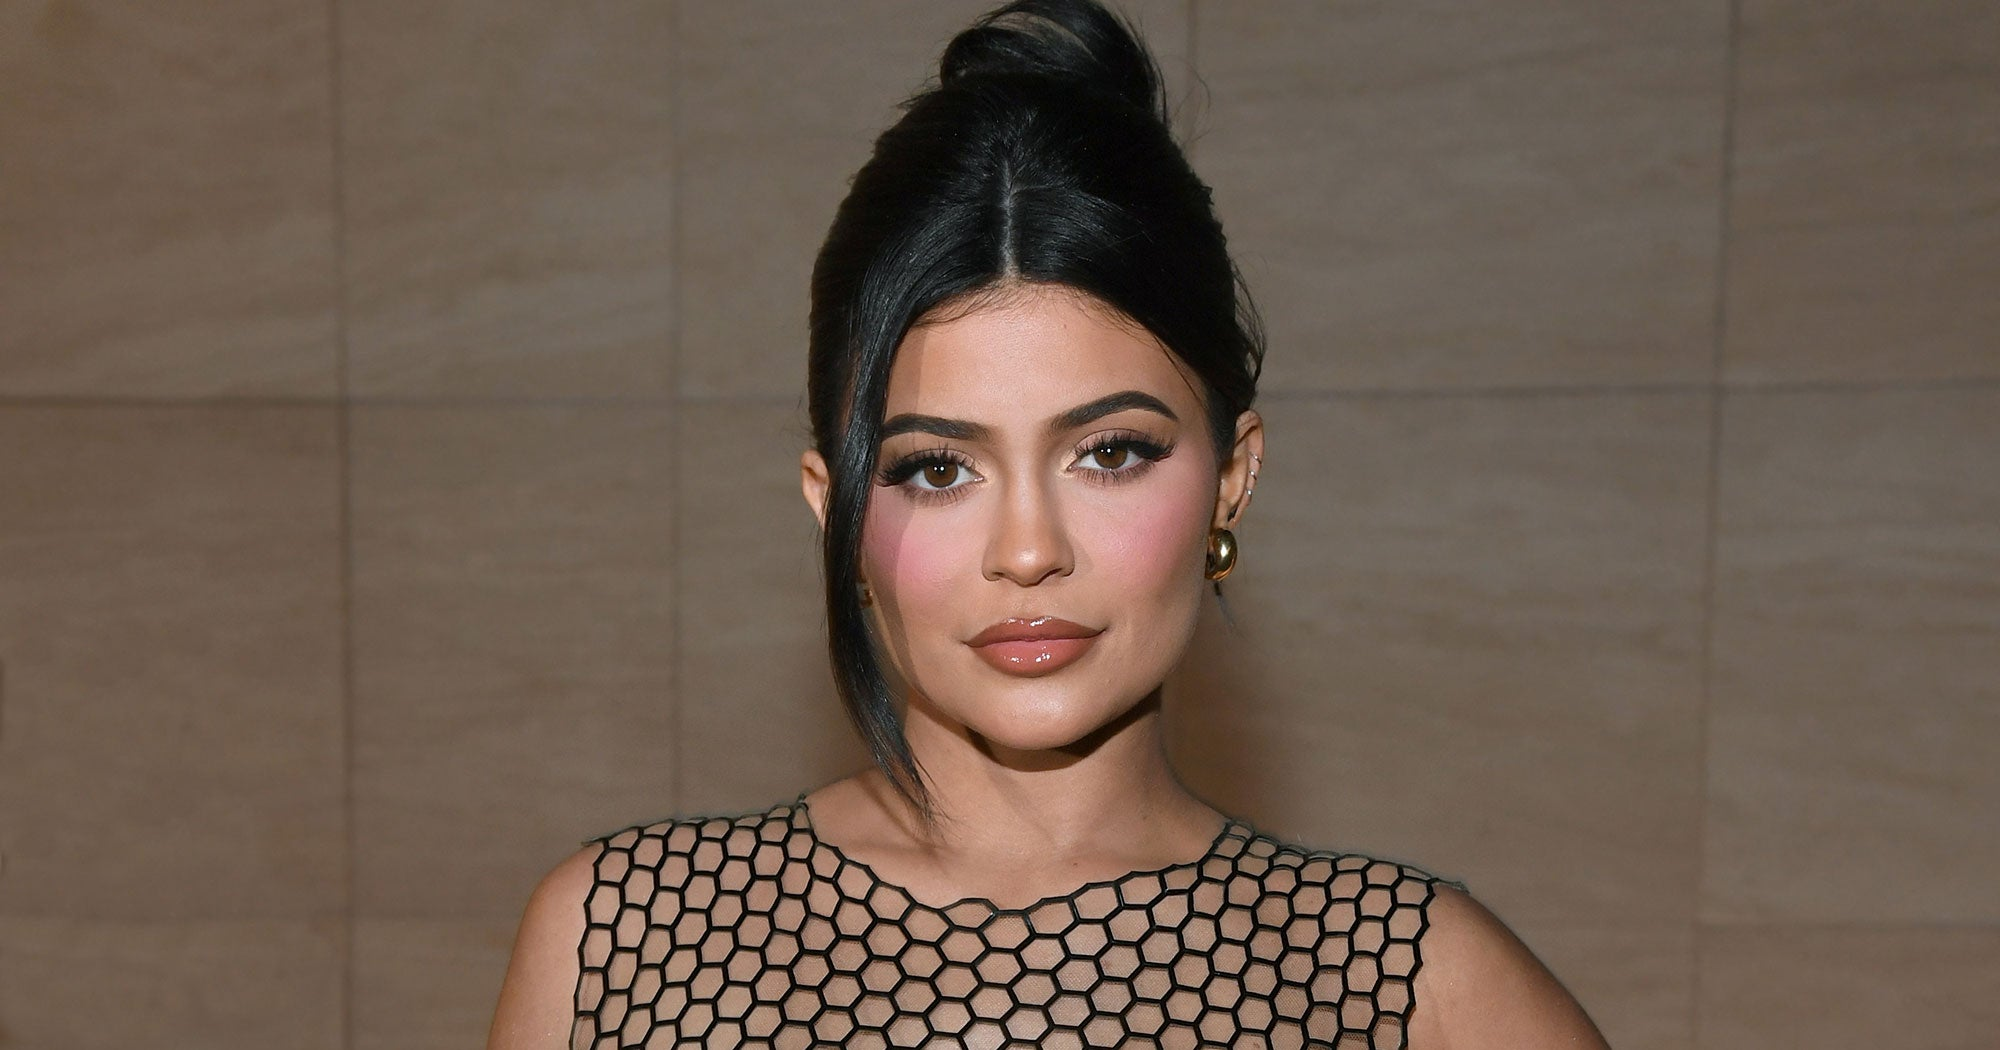 Kylie Jenner Shows Off Yet Another New Hair Look That's All Valentine's Vibes